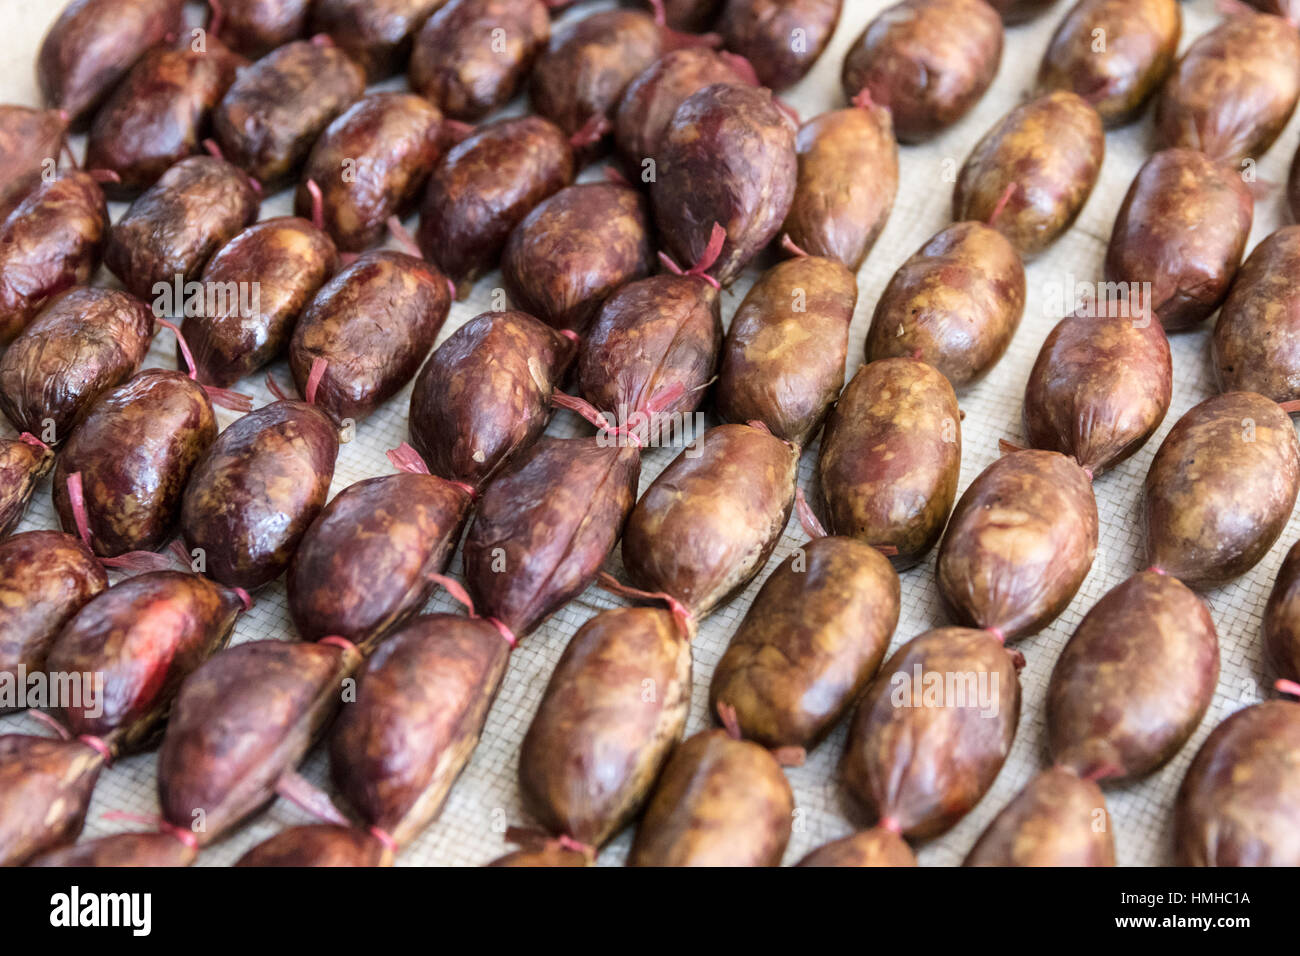 Sausage on Sale at City Food Market. Phonsevan, Xieng Khuang Province, Laos - Stock Image